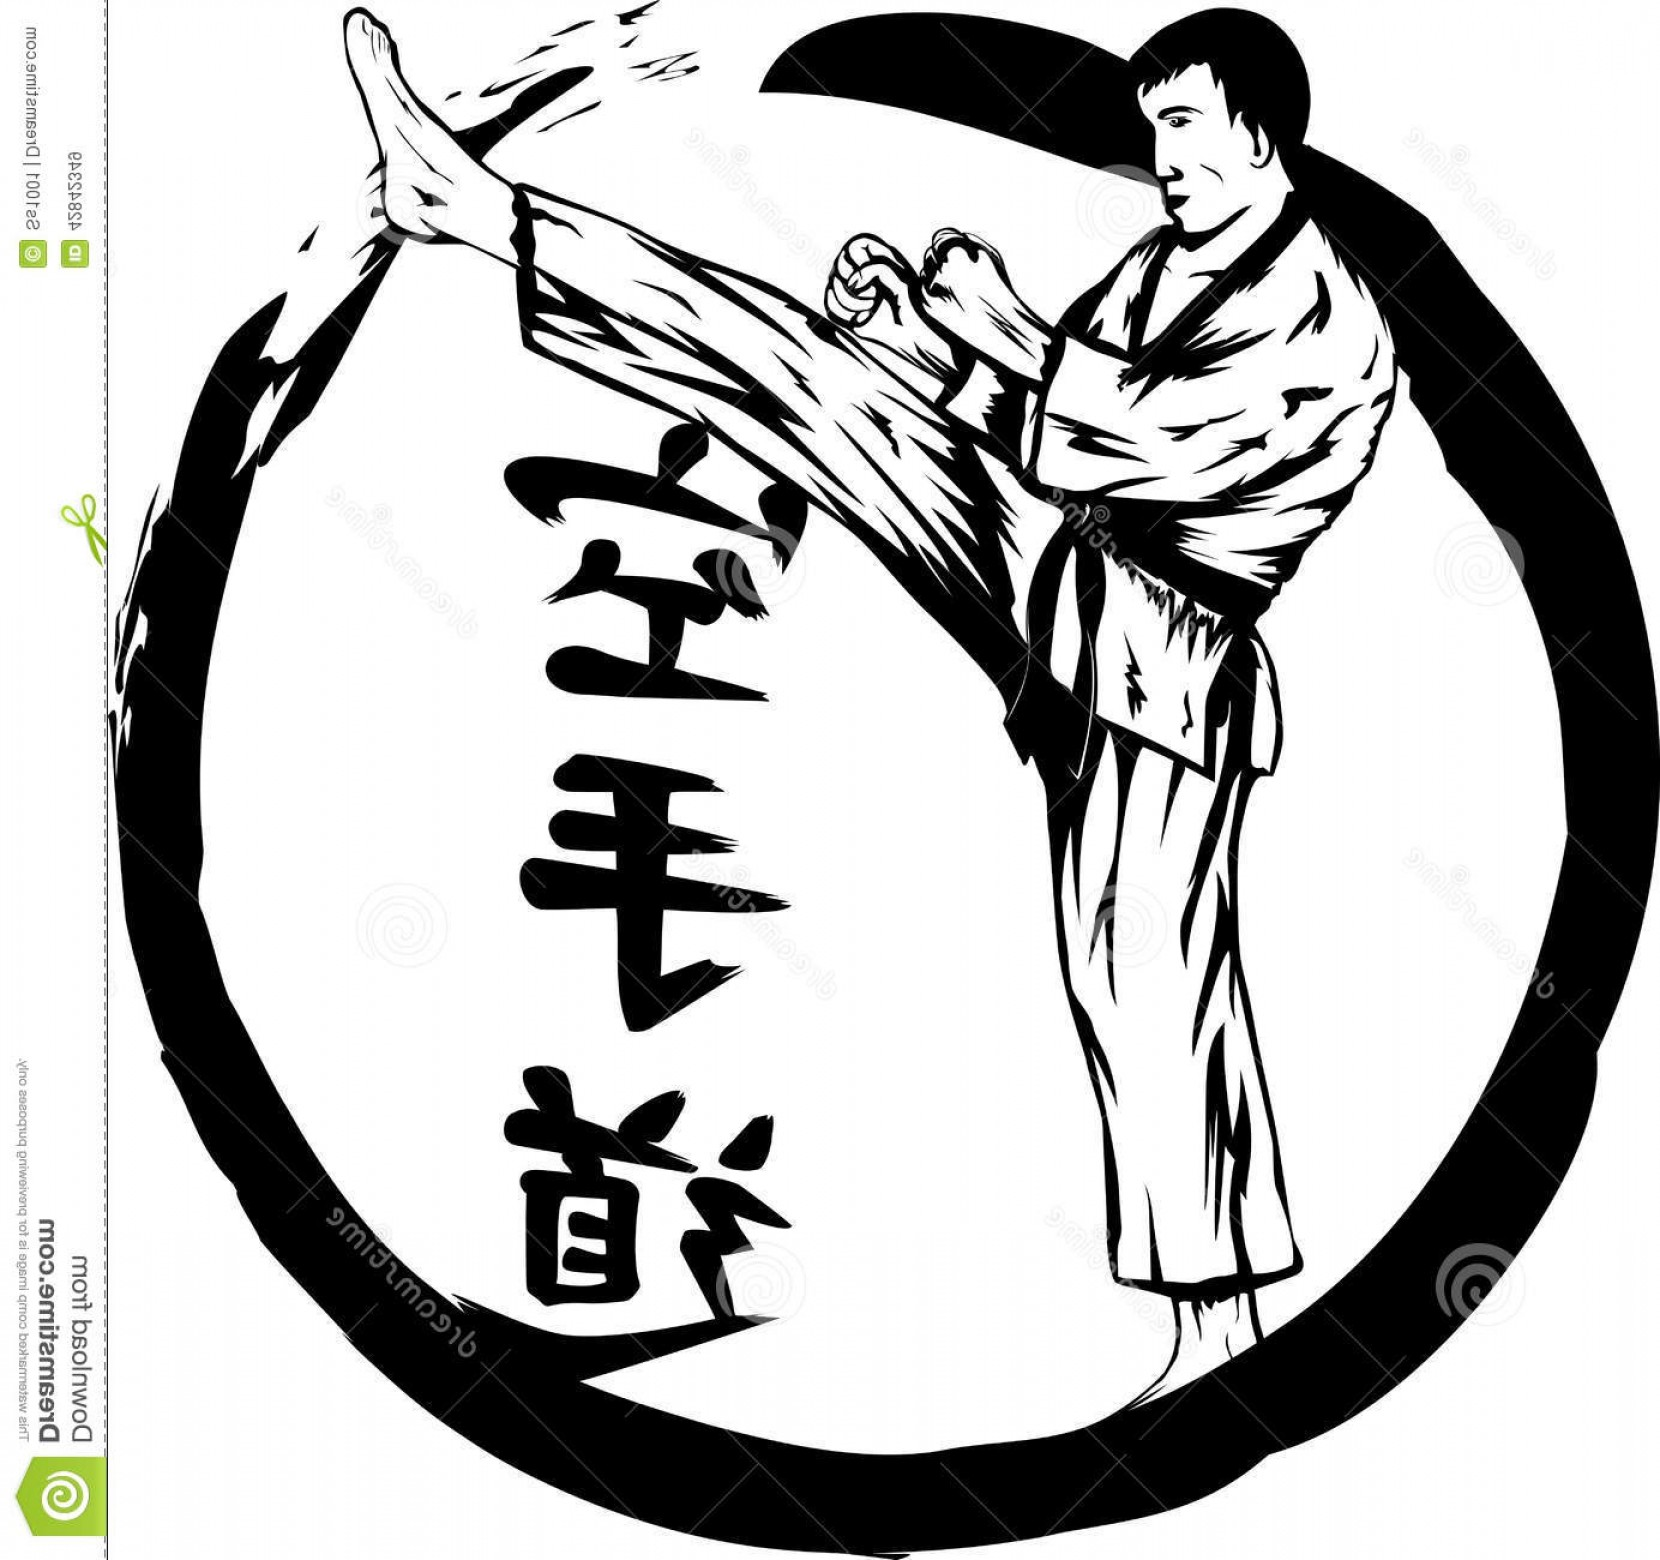 Karate Vector: Stock Illustration Karate Vector Illustration Karateka Carries Out Kick Hieroglyph Do Image